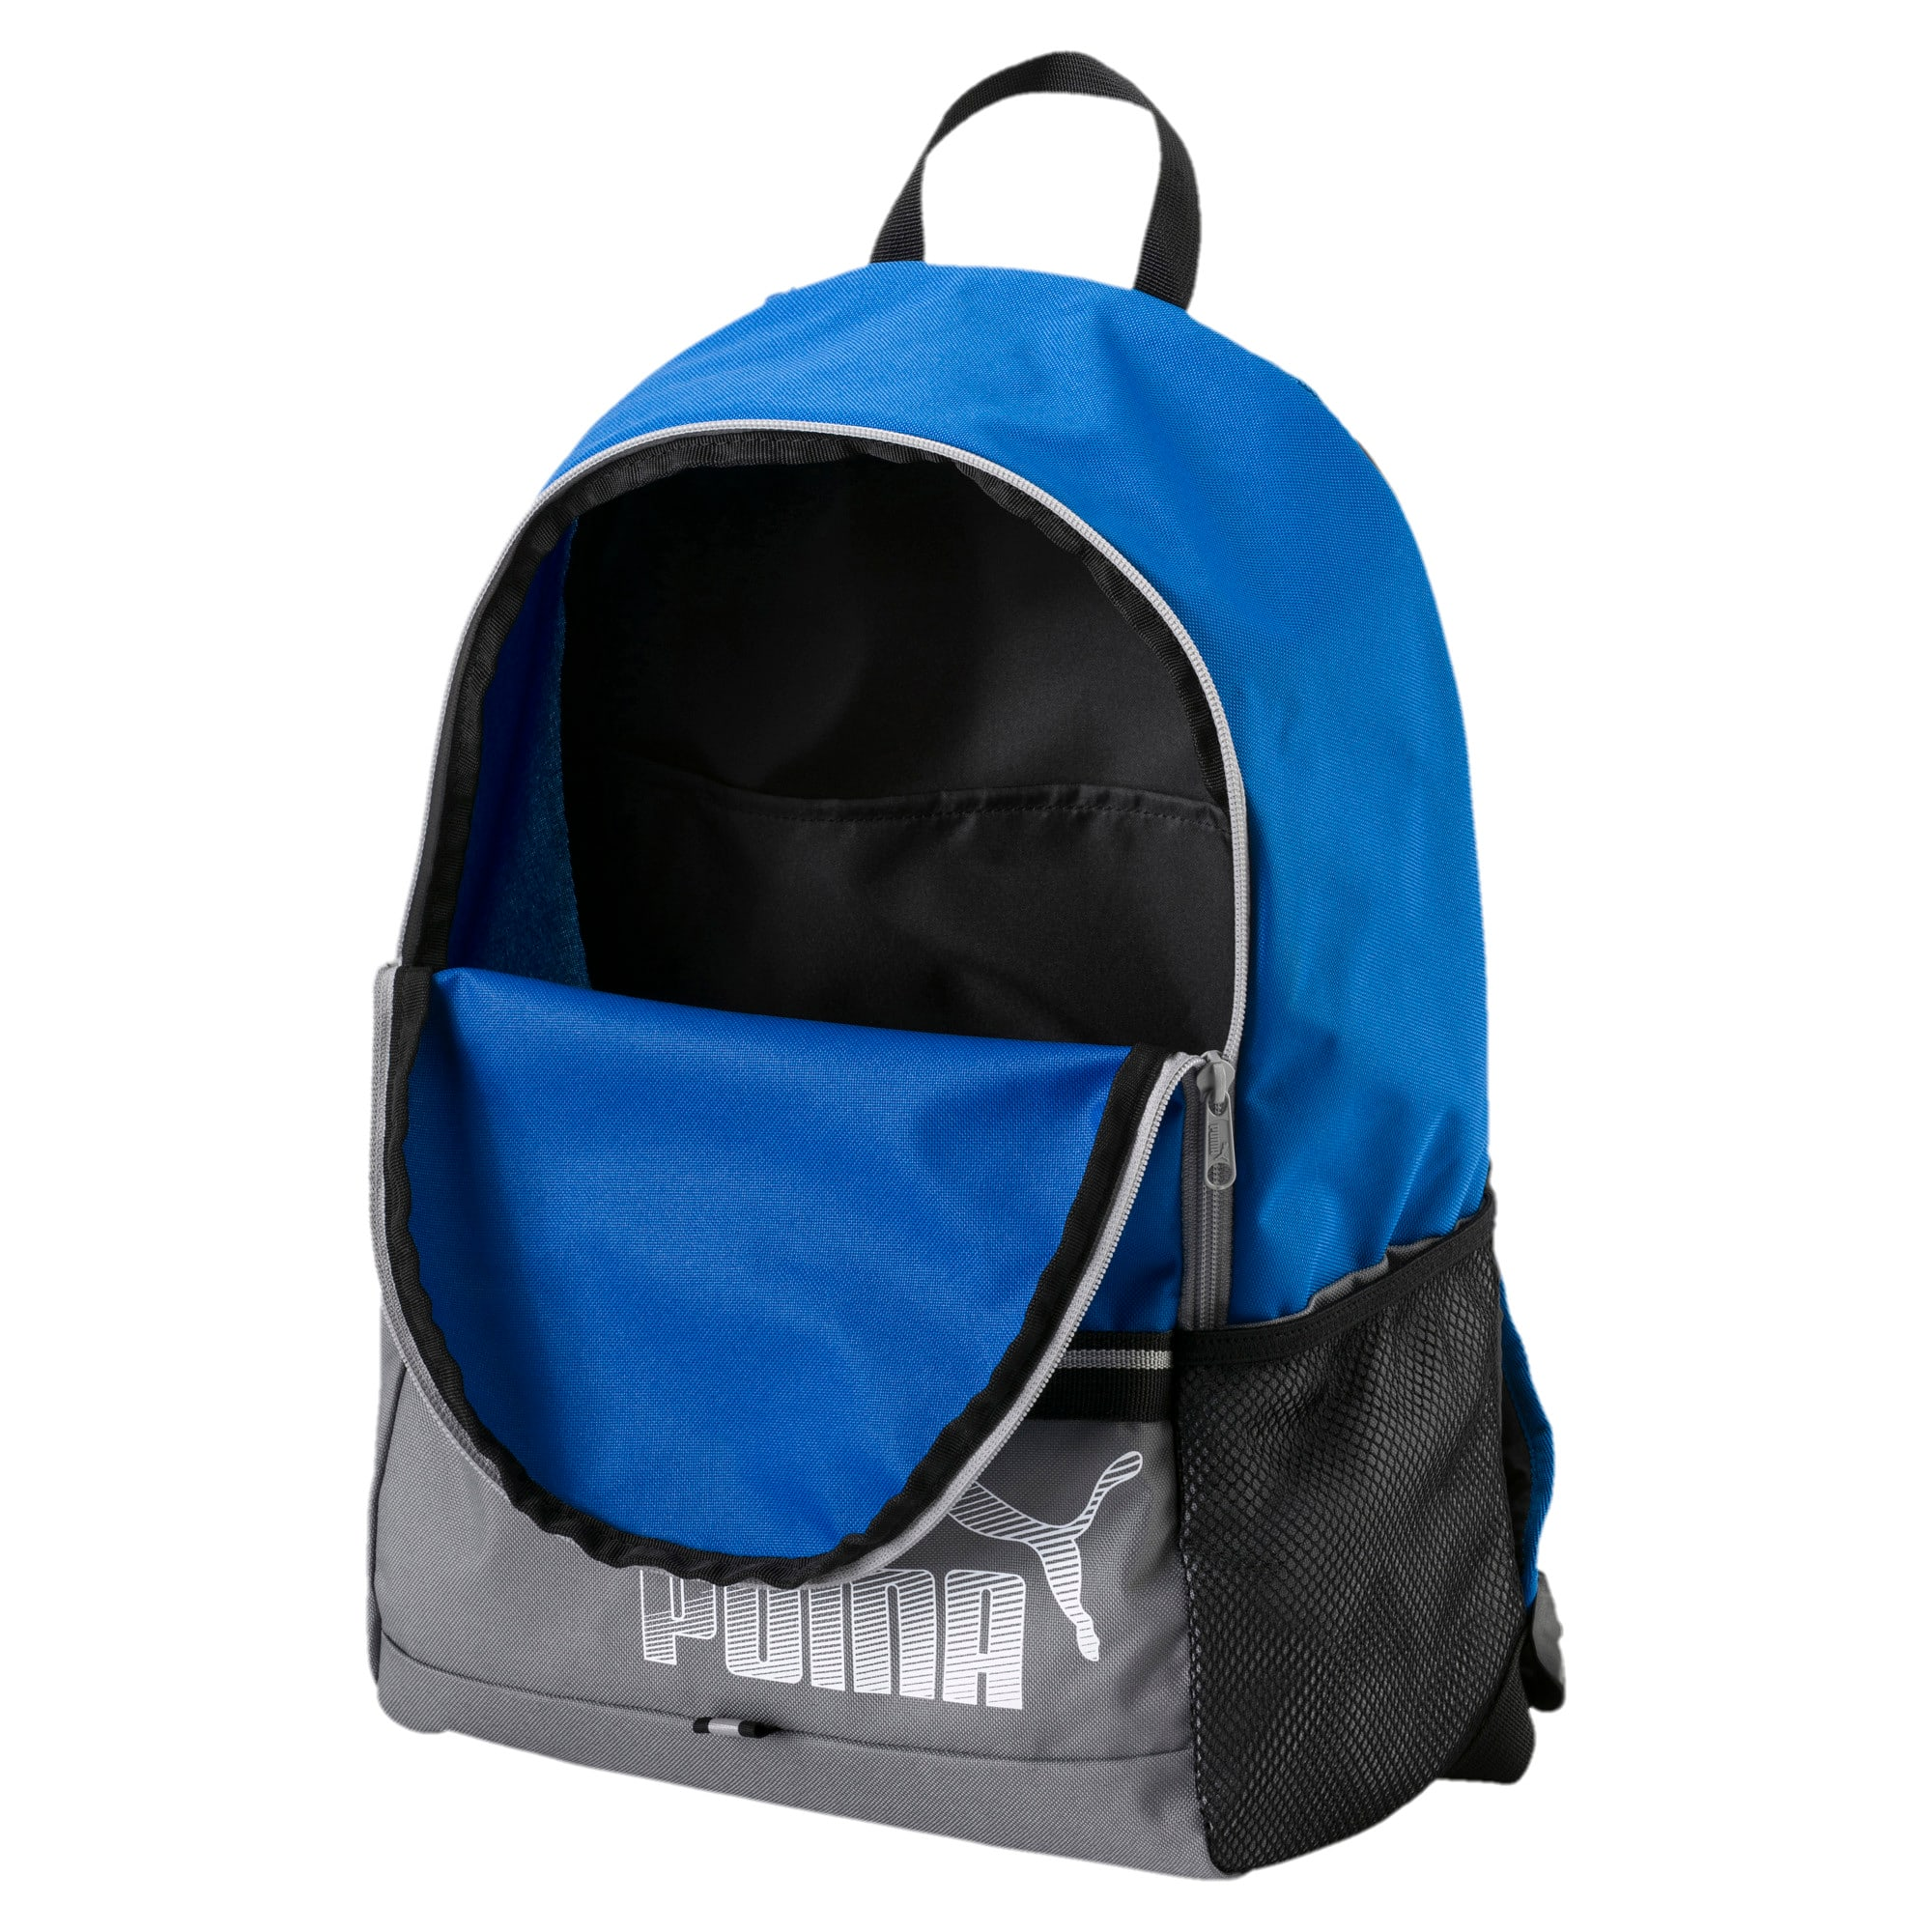 Thumbnail 3 of Phase Backpack II, Lapis Blue-QUIET SHADE, medium-IND